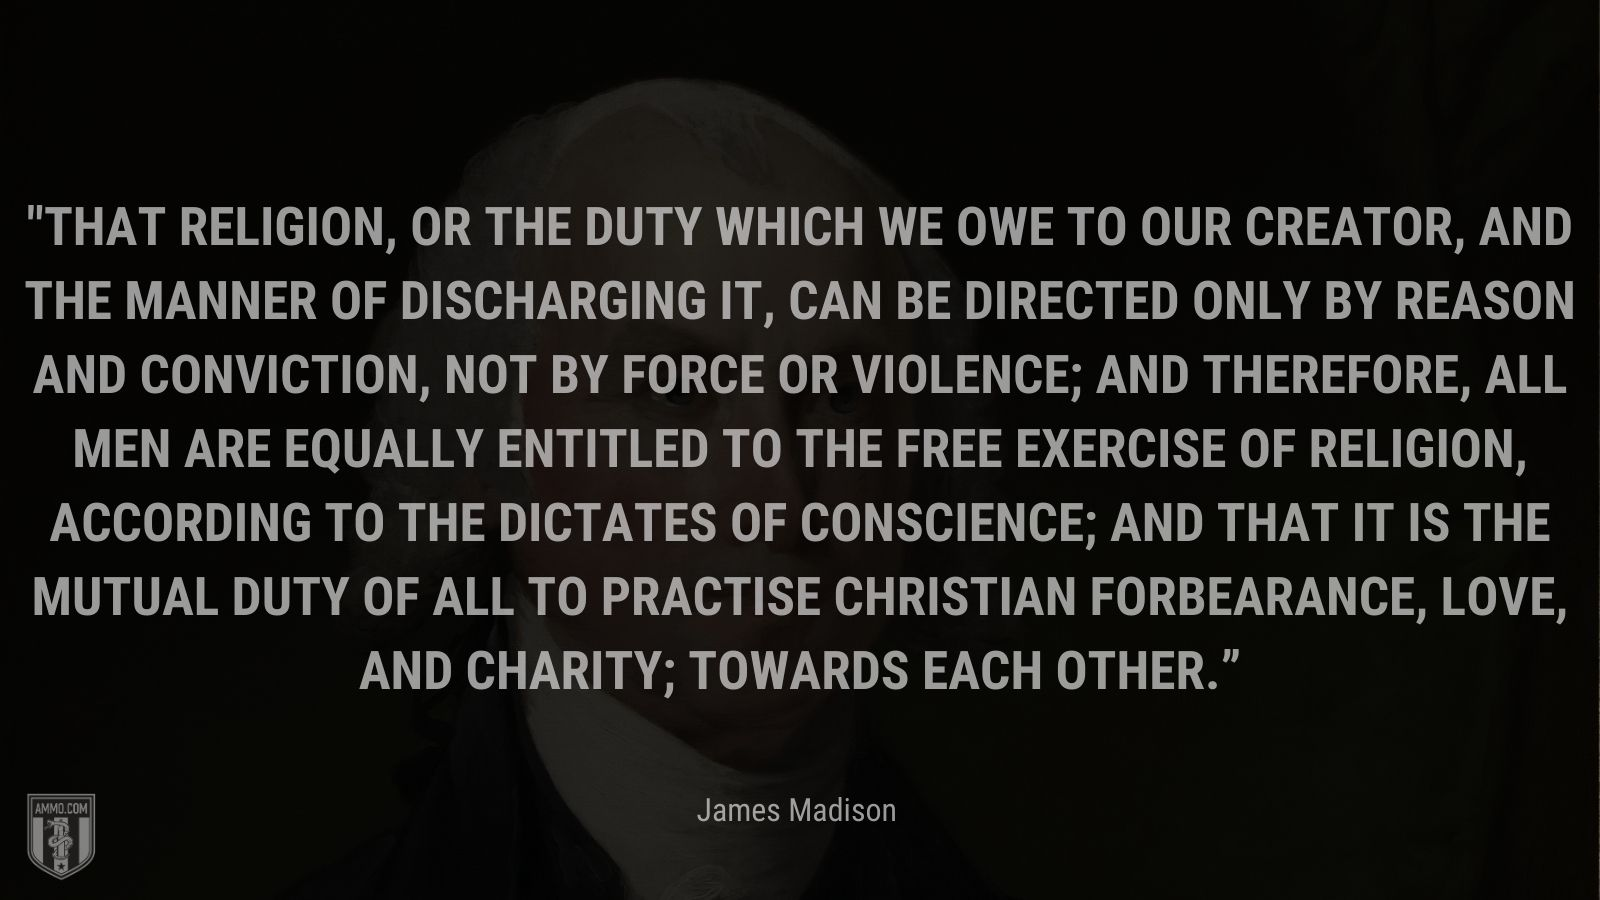 """""""That religion, or the duty which we owe to our CREATOR, and the manner of discharging it, can be directed only by reason and conviction, not by force or violence; and therefore, all men are equally entitled to the free exercise of religion, according to the dictates of conscience; and that it is the mutual duty of all to practise Christian forbearance, love, and charity; towards each other."""" -James Madison"""